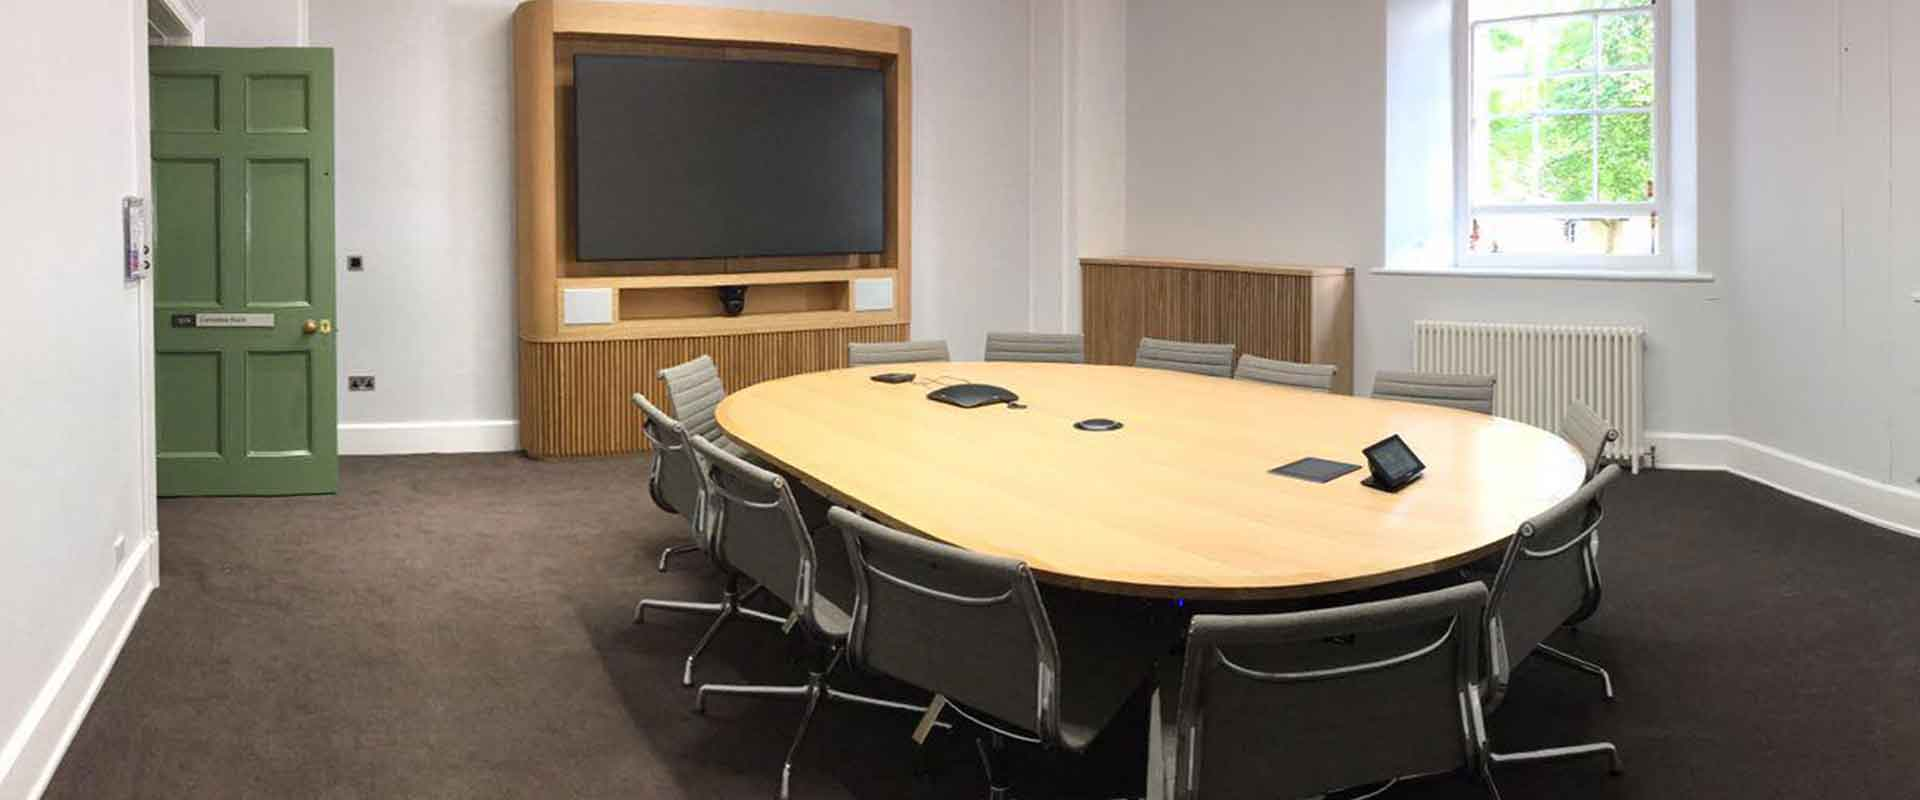 UCL-conference-room-with-meeting-room-table-and-media-unit